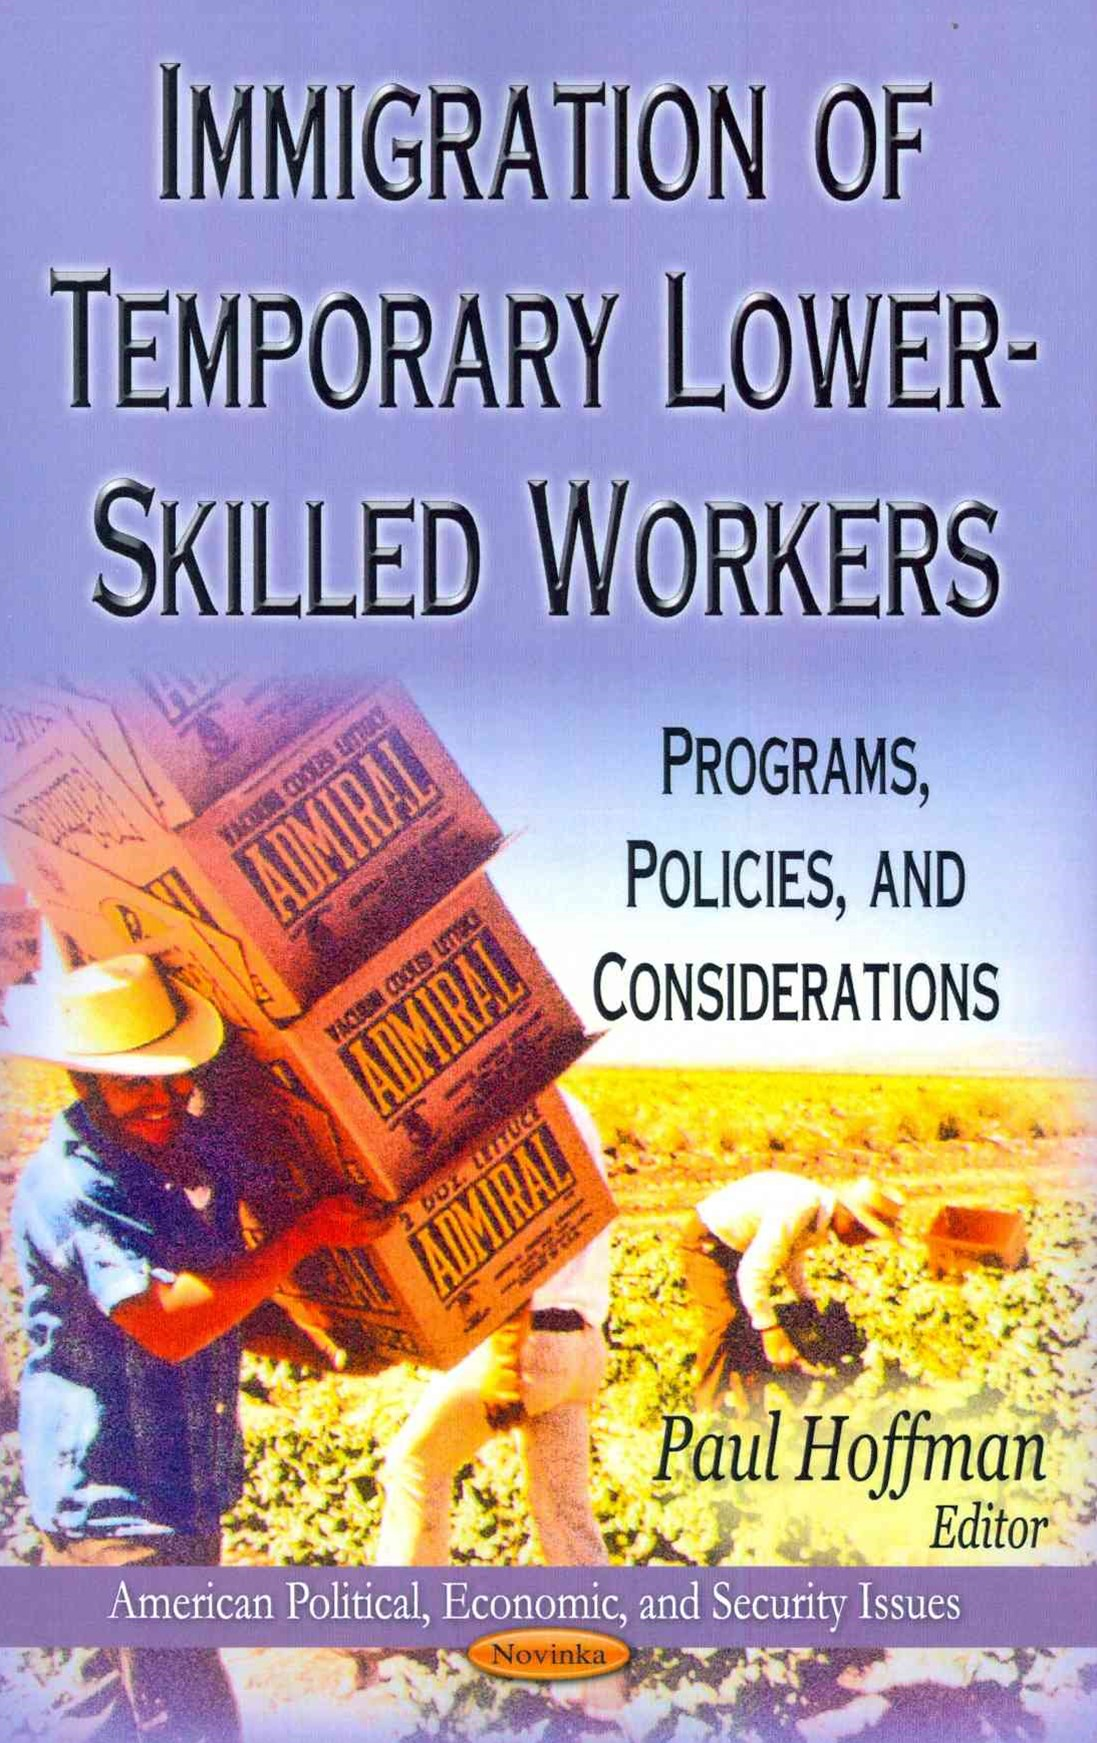 Immigration of Temporary Lower-Skilled Workers